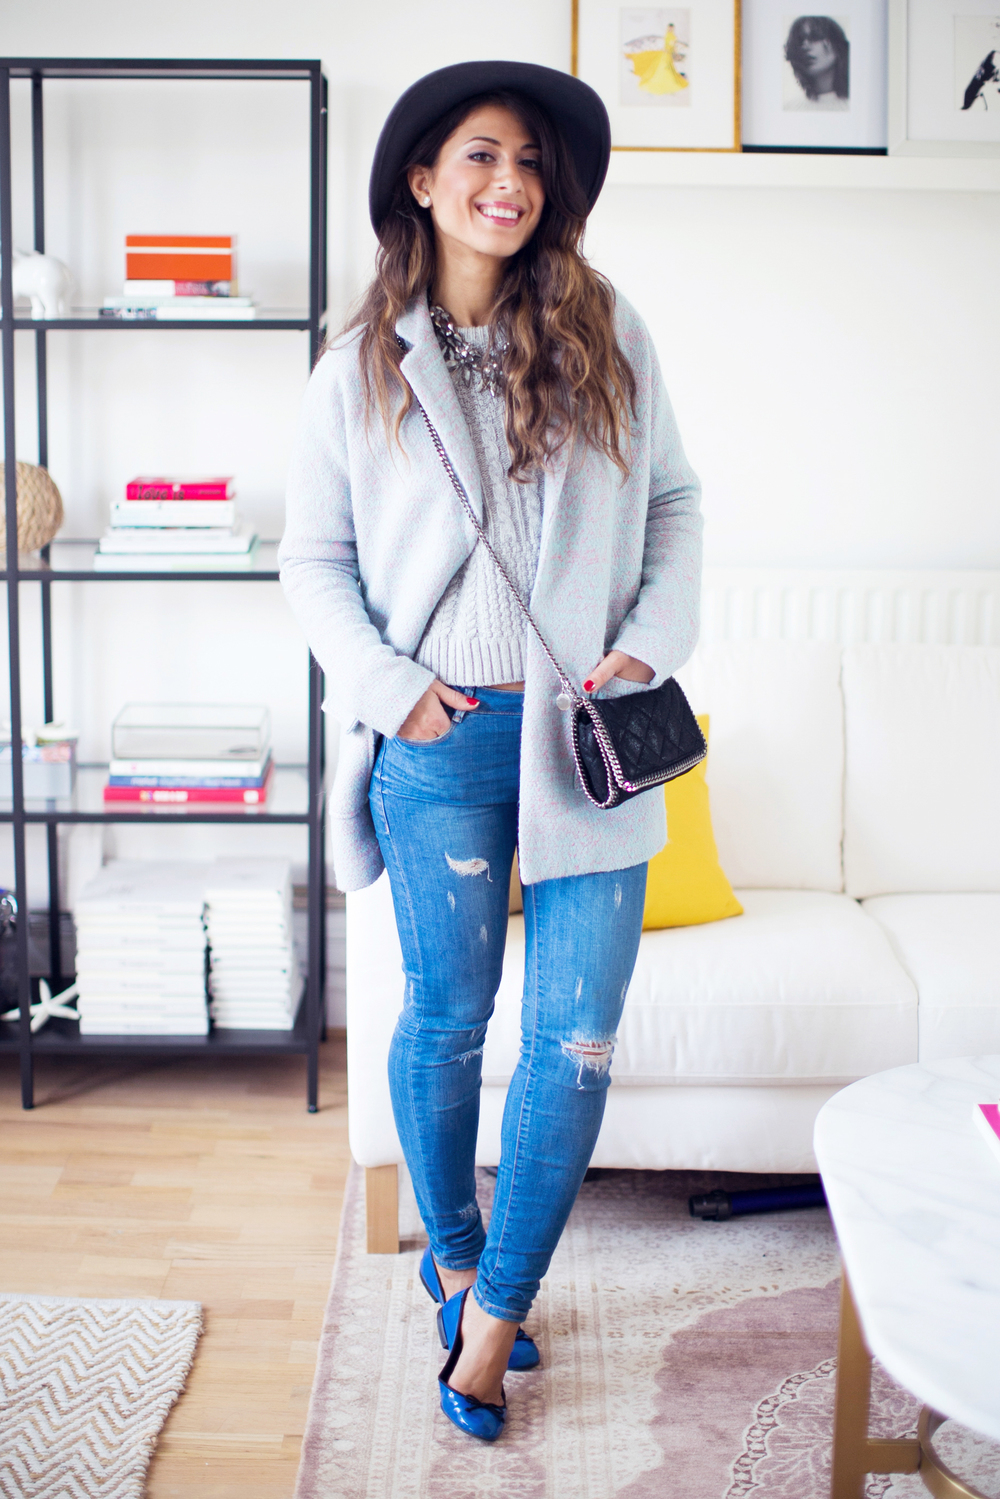 This Shopping & Style Guide to womens jeans will steer you to find the perfect jeans - splitting up the heavy and sometimes confusing denim jeans terms and .